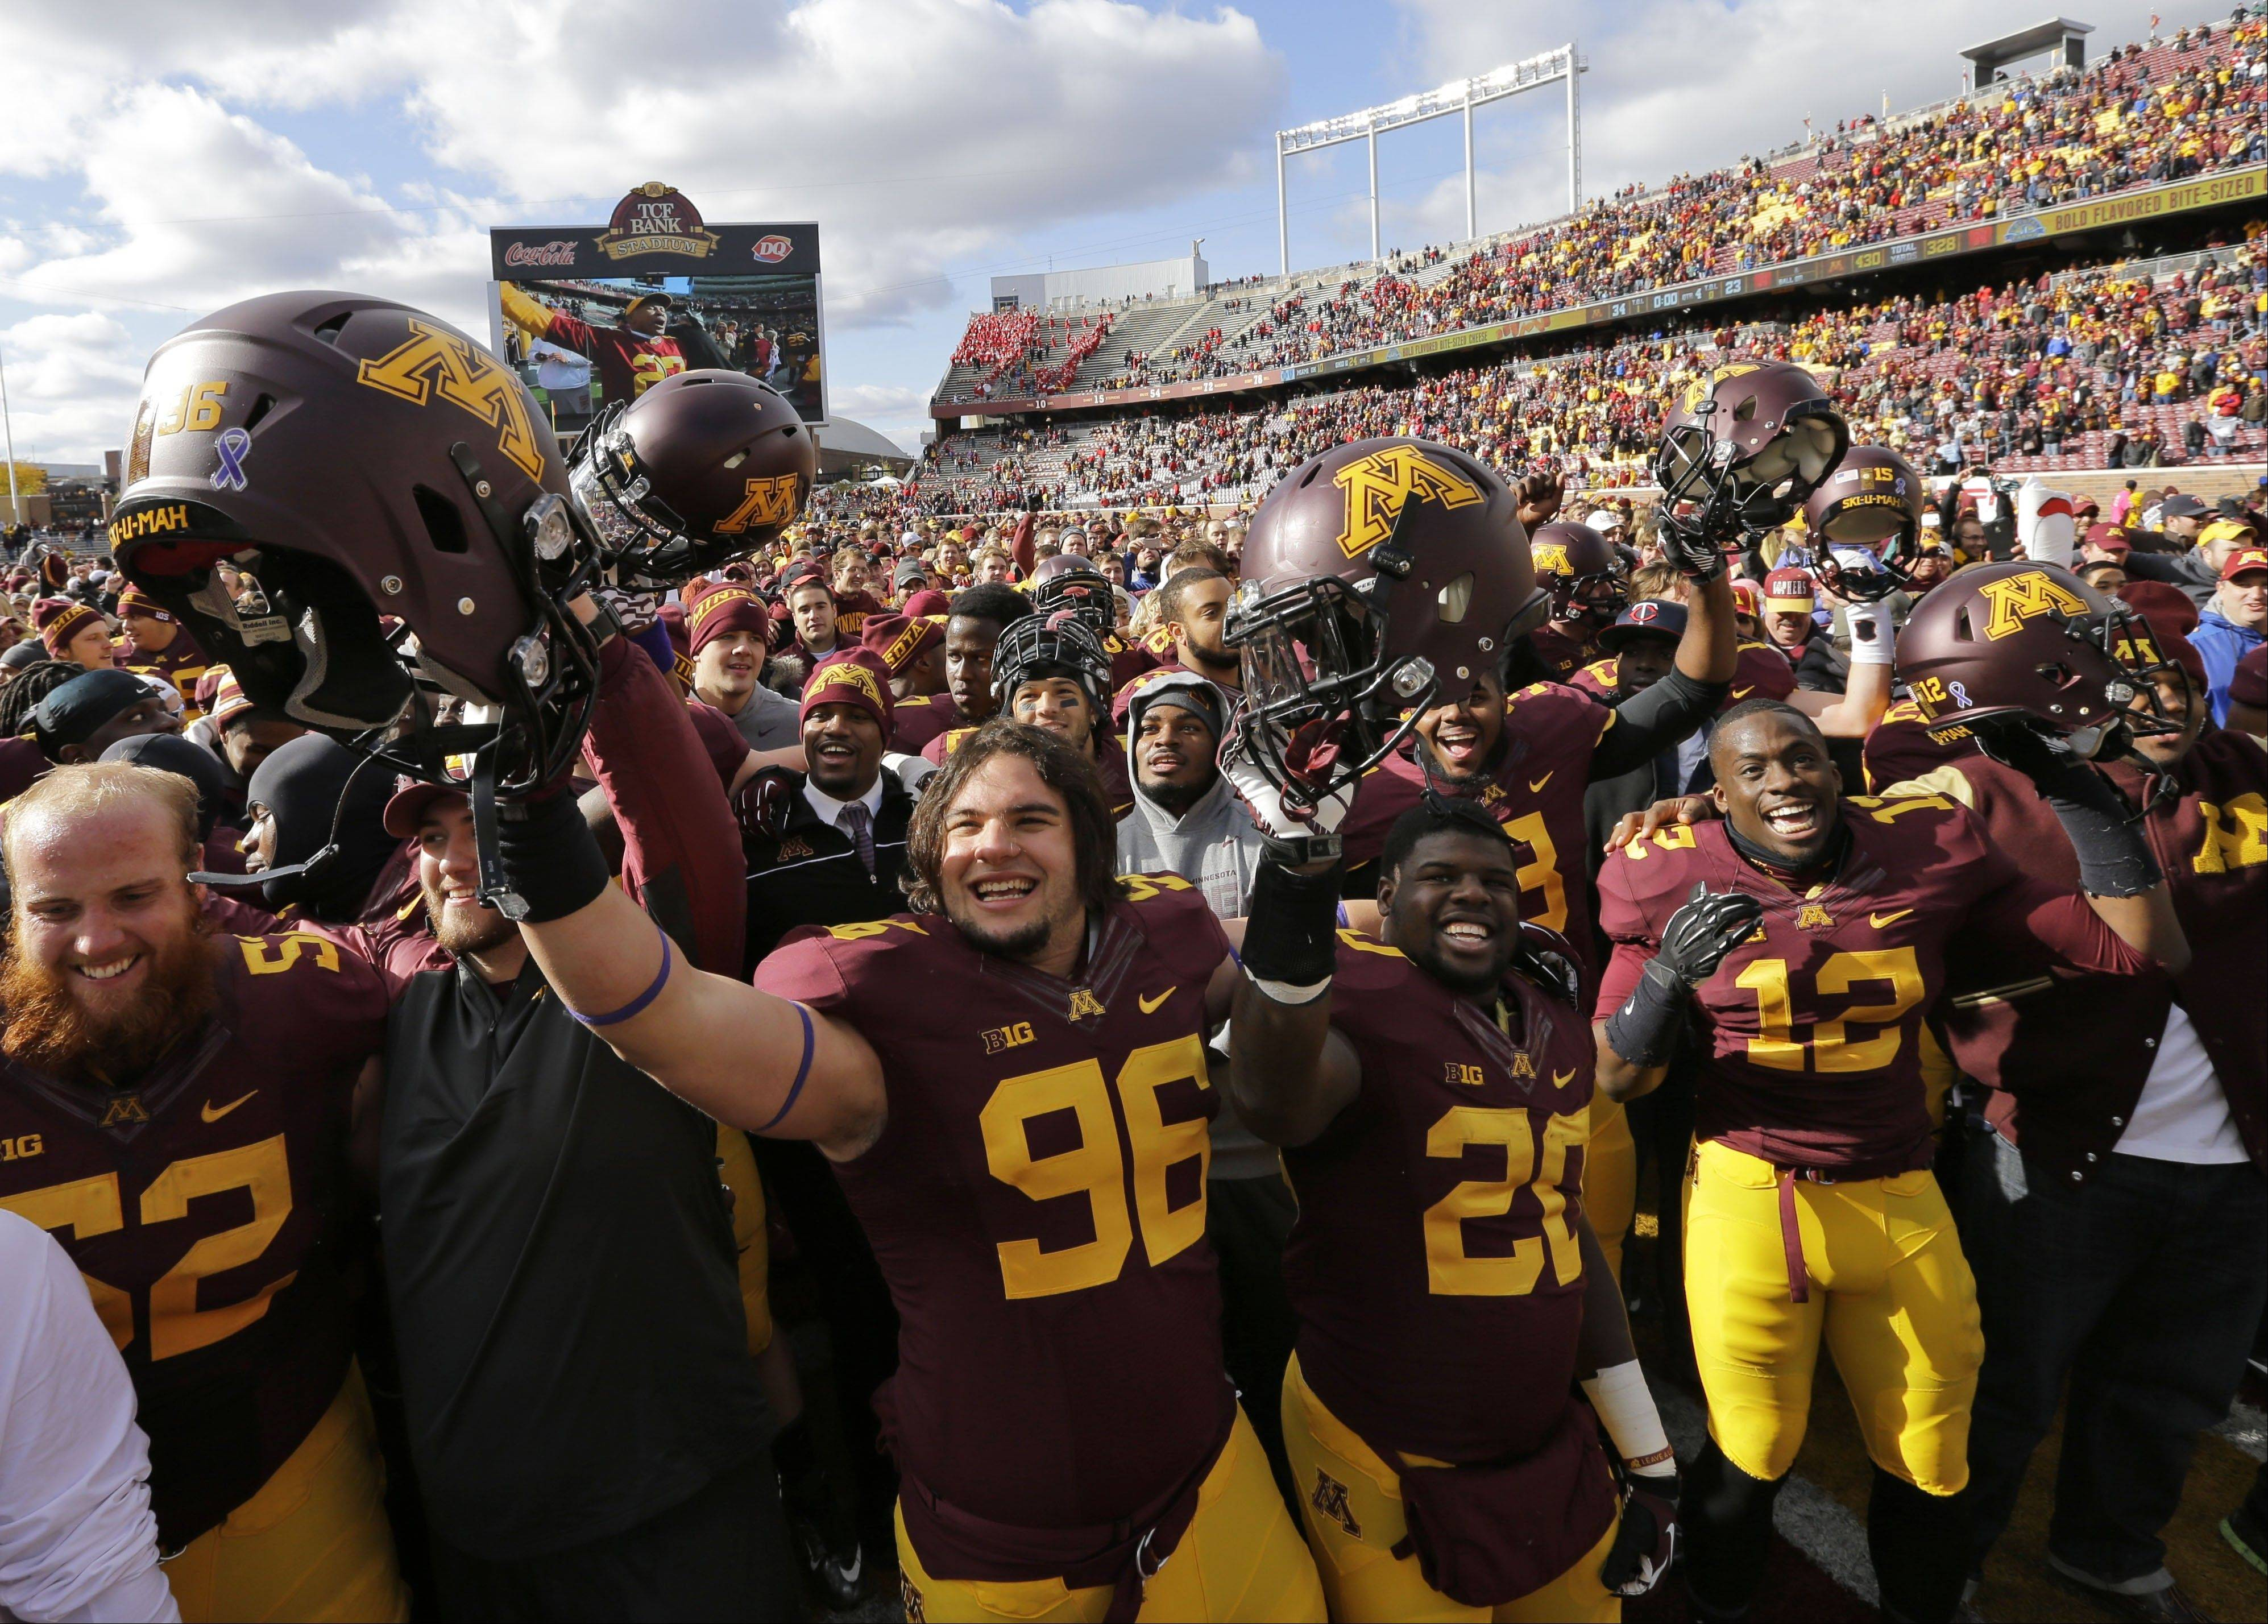 Minnesota defensive lineman Jordan Hinojosa (96), his teammates and fans celebrate after the Gophers beat No. 25 Nebraska 34-23 on Saturday in Minneapolis.